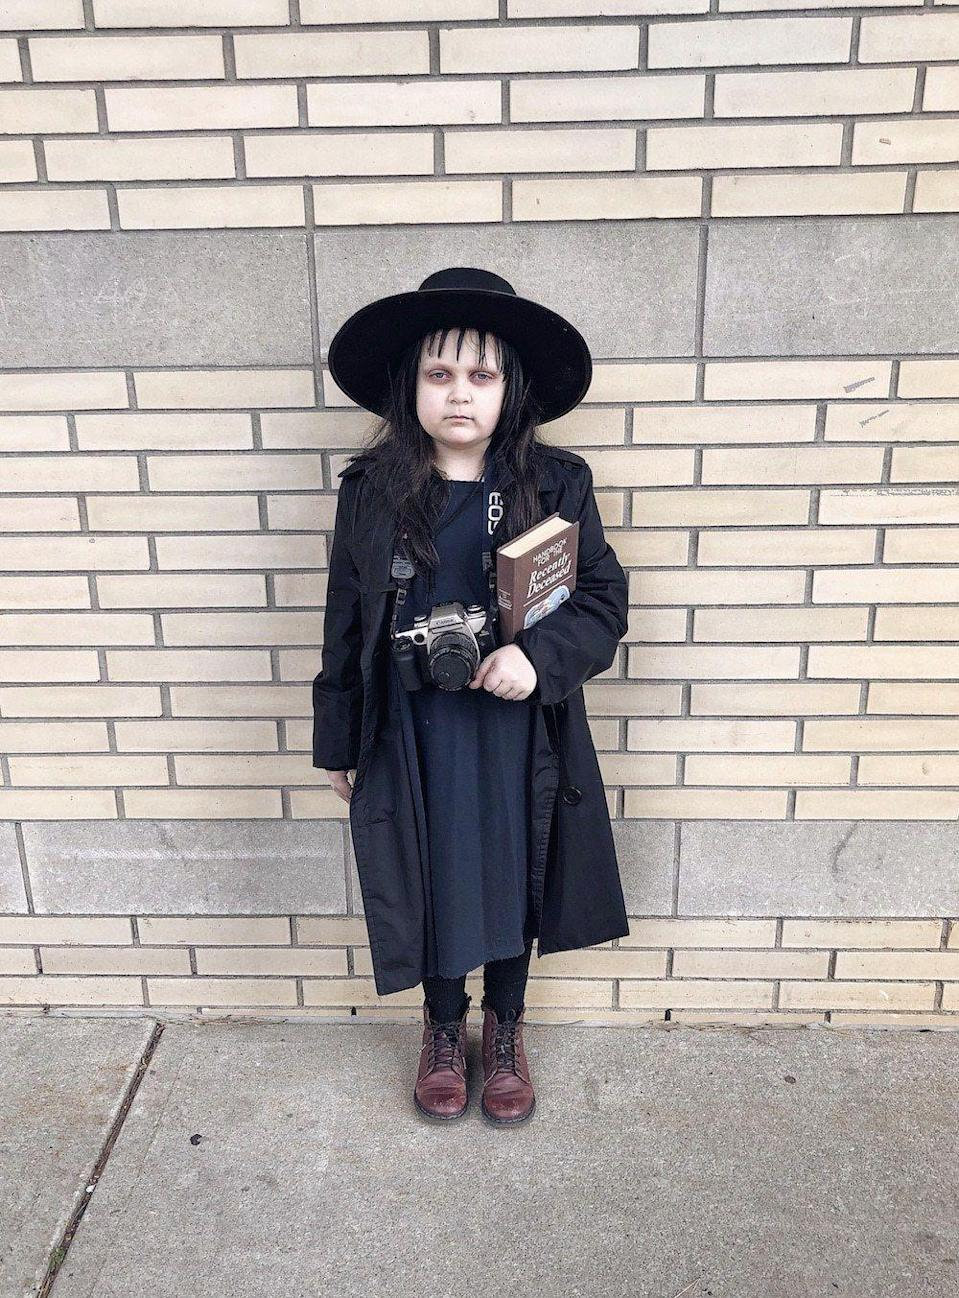 """<p>Channel your inner Winona Ryder this Halloween with this DIY Lydia Deetz costume. Don't forget your <em>Handbook for the Recently Deceased</em>! </p><p><strong>See more at <a href=""""http://livelovesara.com/2019/10/lydia-deetz-hallloween-costume/"""" rel=""""nofollow noopener"""" target=""""_blank"""" data-ylk=""""slk:Live Love Sara"""" class=""""link rapid-noclick-resp"""">Live Love Sara</a>. </strong></p><p><a class=""""link rapid-noclick-resp"""" href=""""https://go.redirectingat.com?id=74968X1596630&url=https%3A%2F%2Fwww.walmart.com%2Fip%2FS-noilite-8-Bangs-Clip-in-Hair-Extensions-Front-Neat-Bang-Fringe-One-Piece-Striaght-Hairpiece-Accessories-Side-bangs-Ash-blonde-8-30g%2F577778847&sref=https%3A%2F%2Fwww.thepioneerwoman.com%2Fholidays-celebrations%2Fg32645069%2F80s-halloween-costumes%2F"""" rel=""""nofollow noopener"""" target=""""_blank"""" data-ylk=""""slk:SHOP CLIP-ON BANGS"""">SHOP CLIP-ON BANGS</a></p>"""